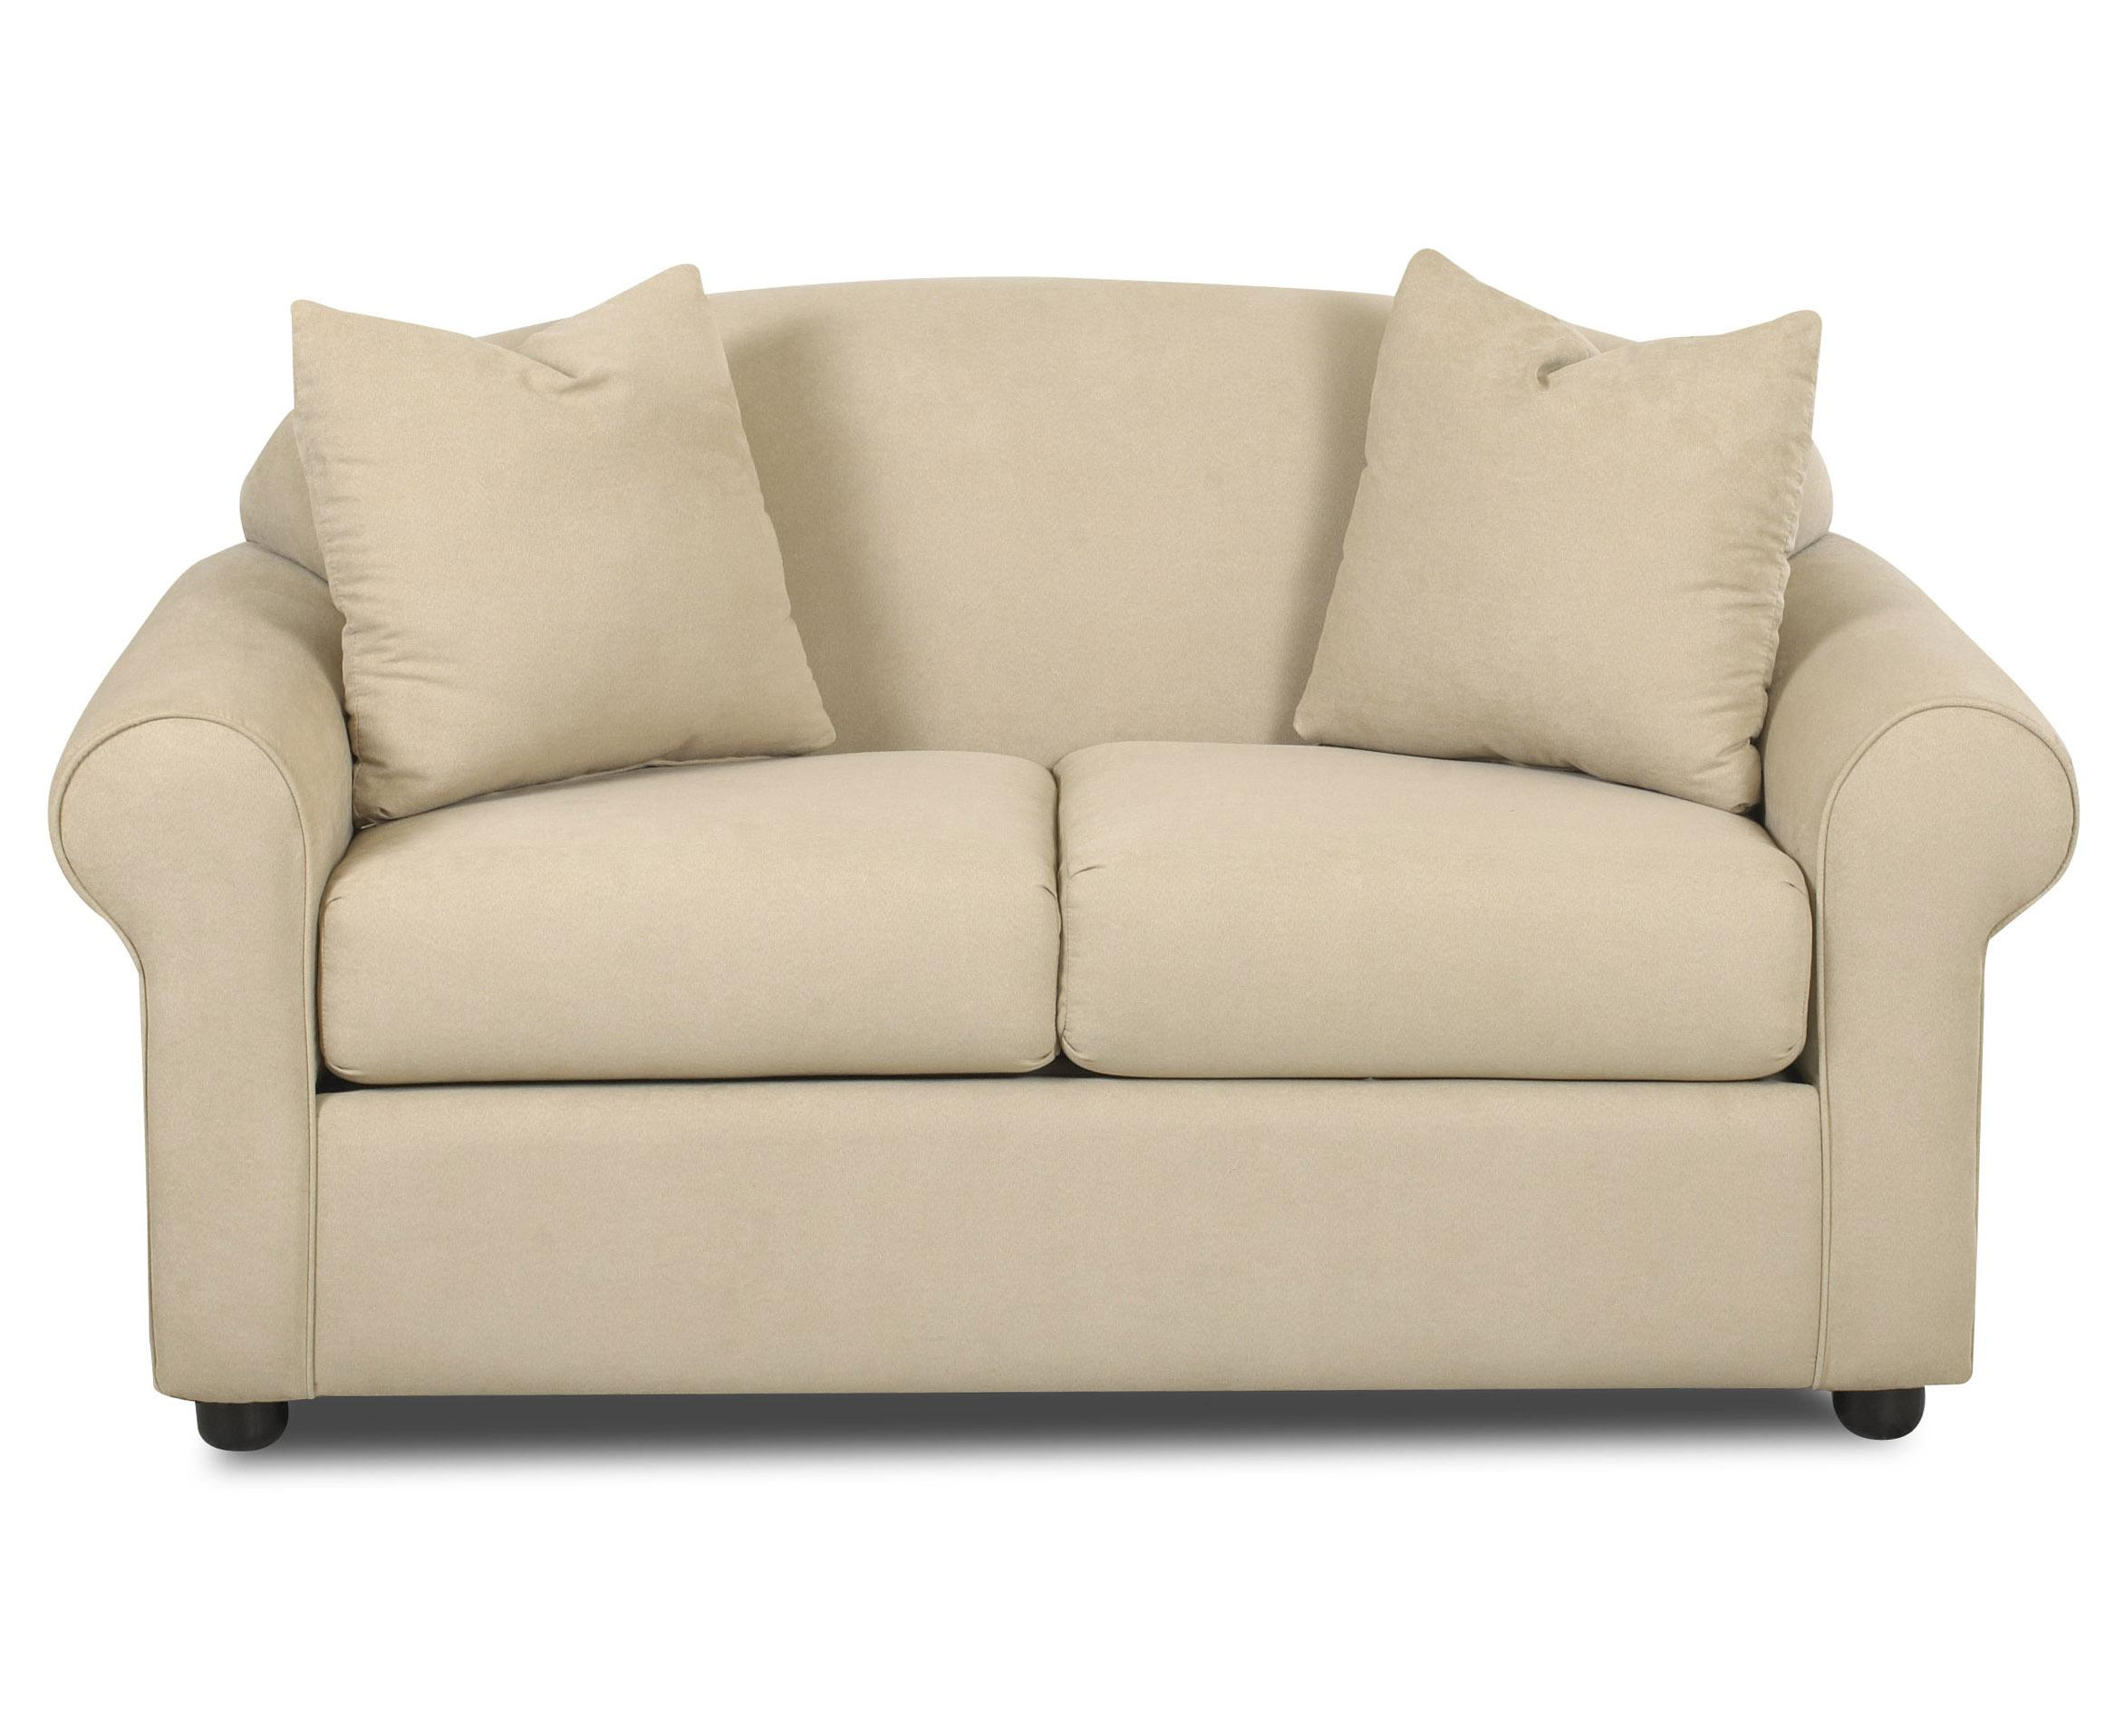 Klaussner Possibilities Low Profile Loveseat With Accent Pillows Wayside Furniture Love Seats